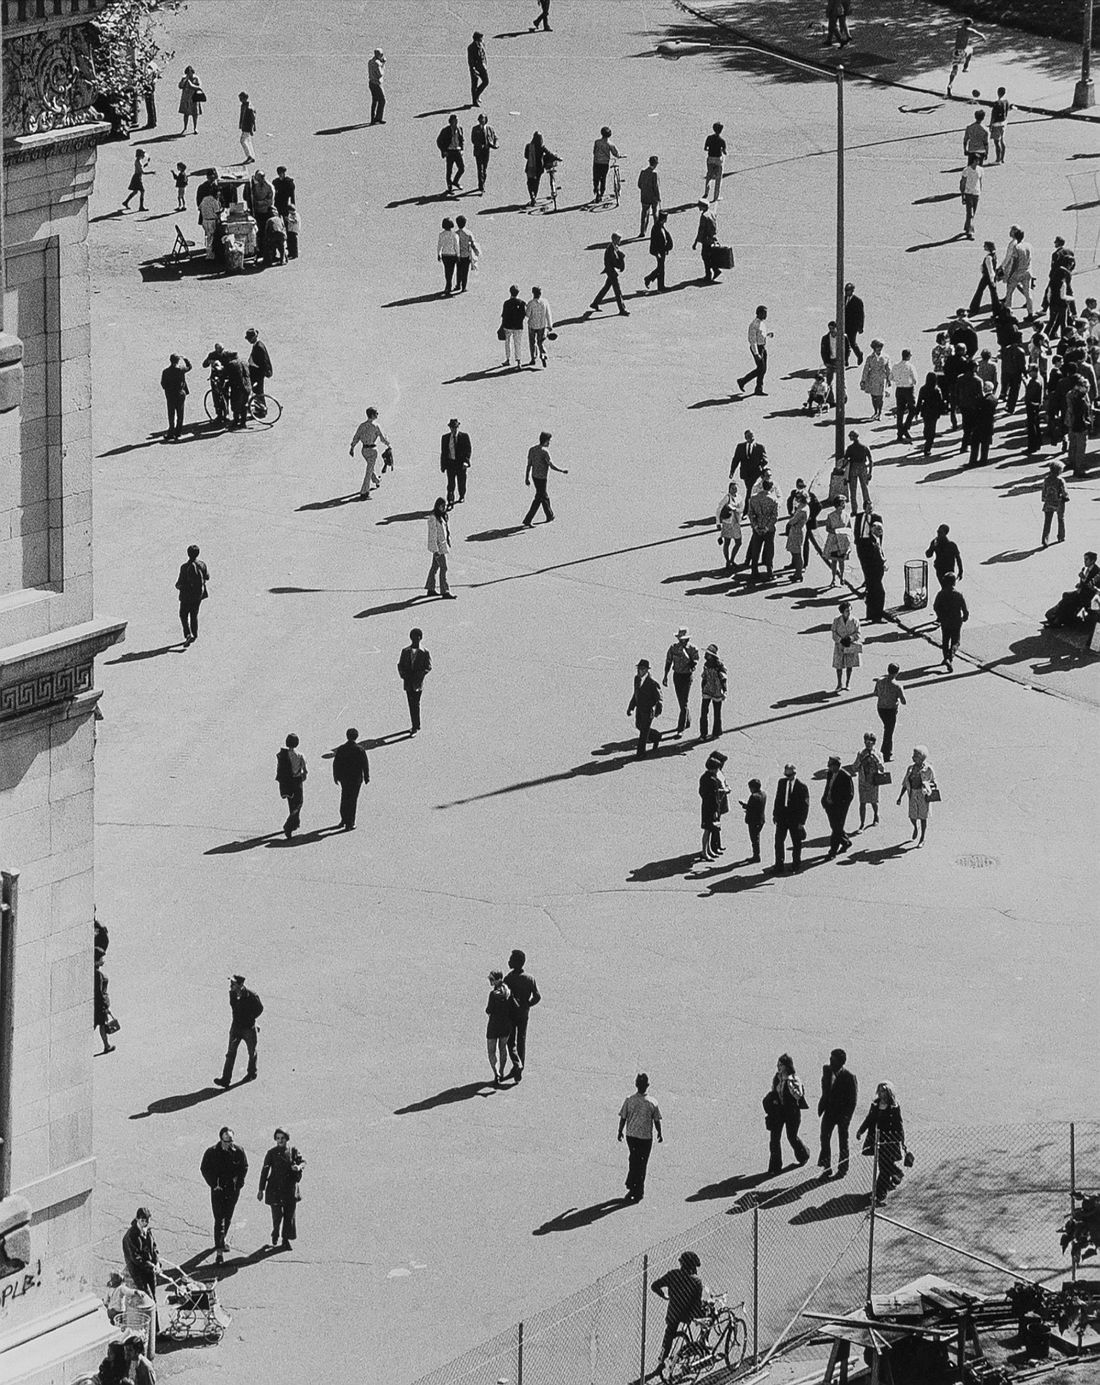 Birds Eye View, Washington Square Park, September 25, 1969,